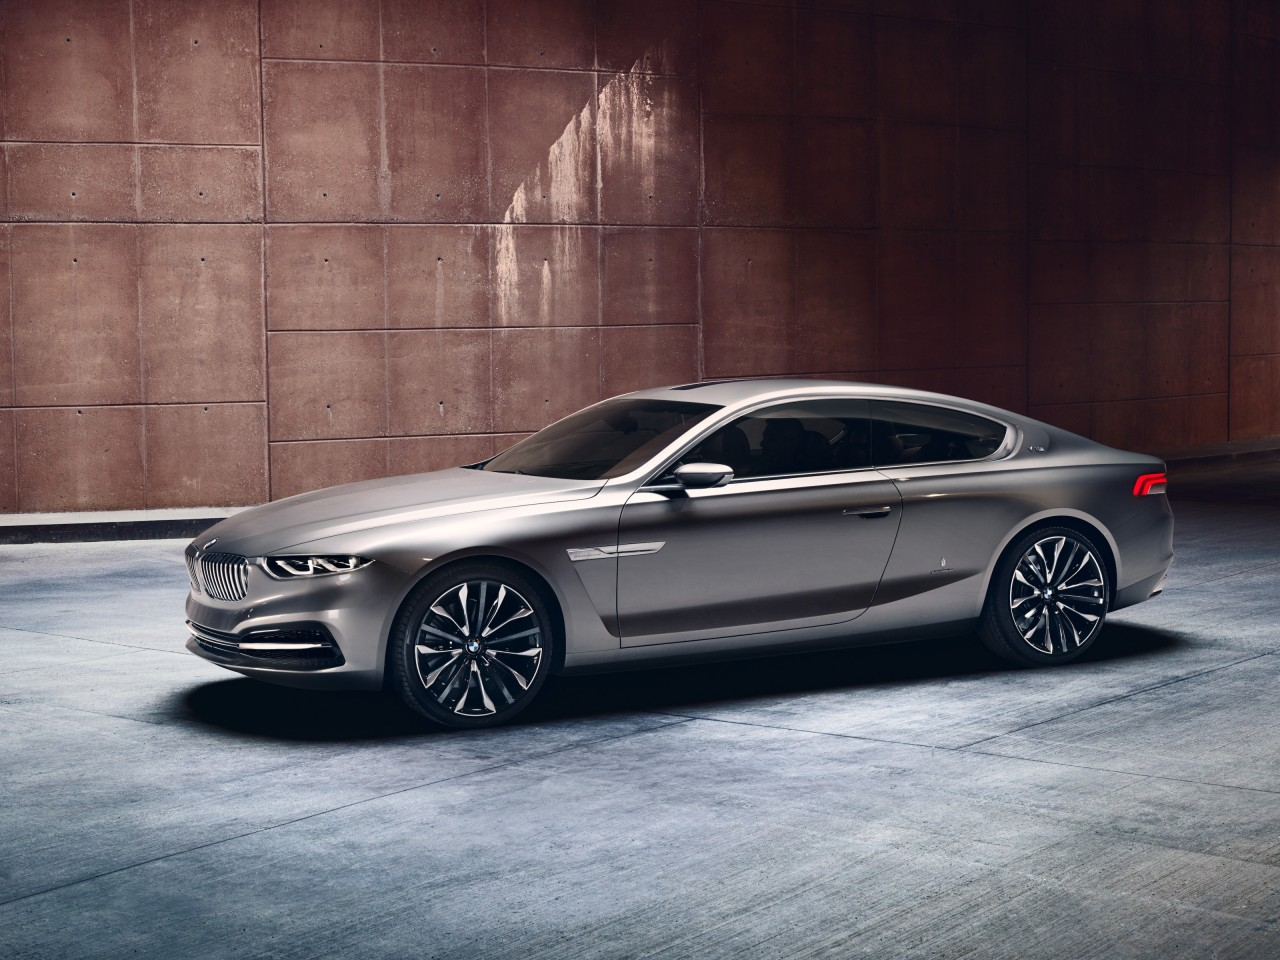 BMW-Pininfarina-Gran-Lusso-Coupe-hd-photo www.autosvit.net